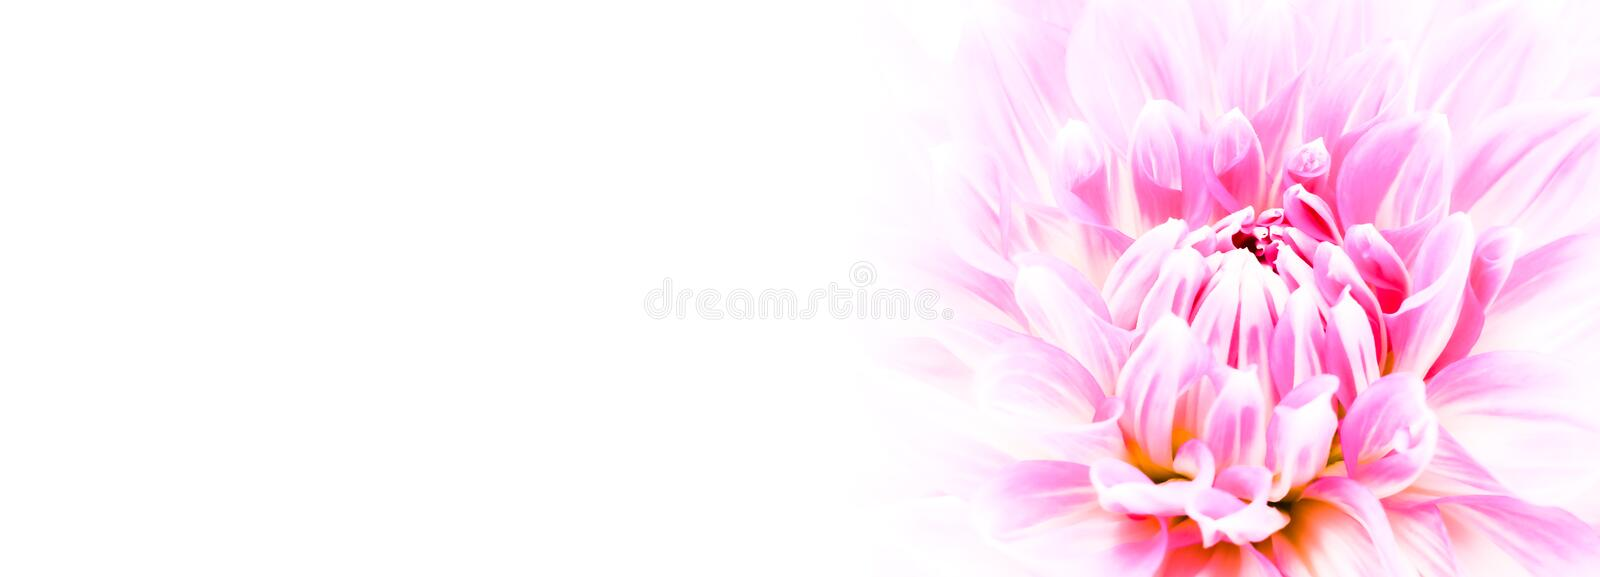 White and purple pink colourful dahlia flower macro photo with intense vivid colors in white wide banner empty background panorama stock photos